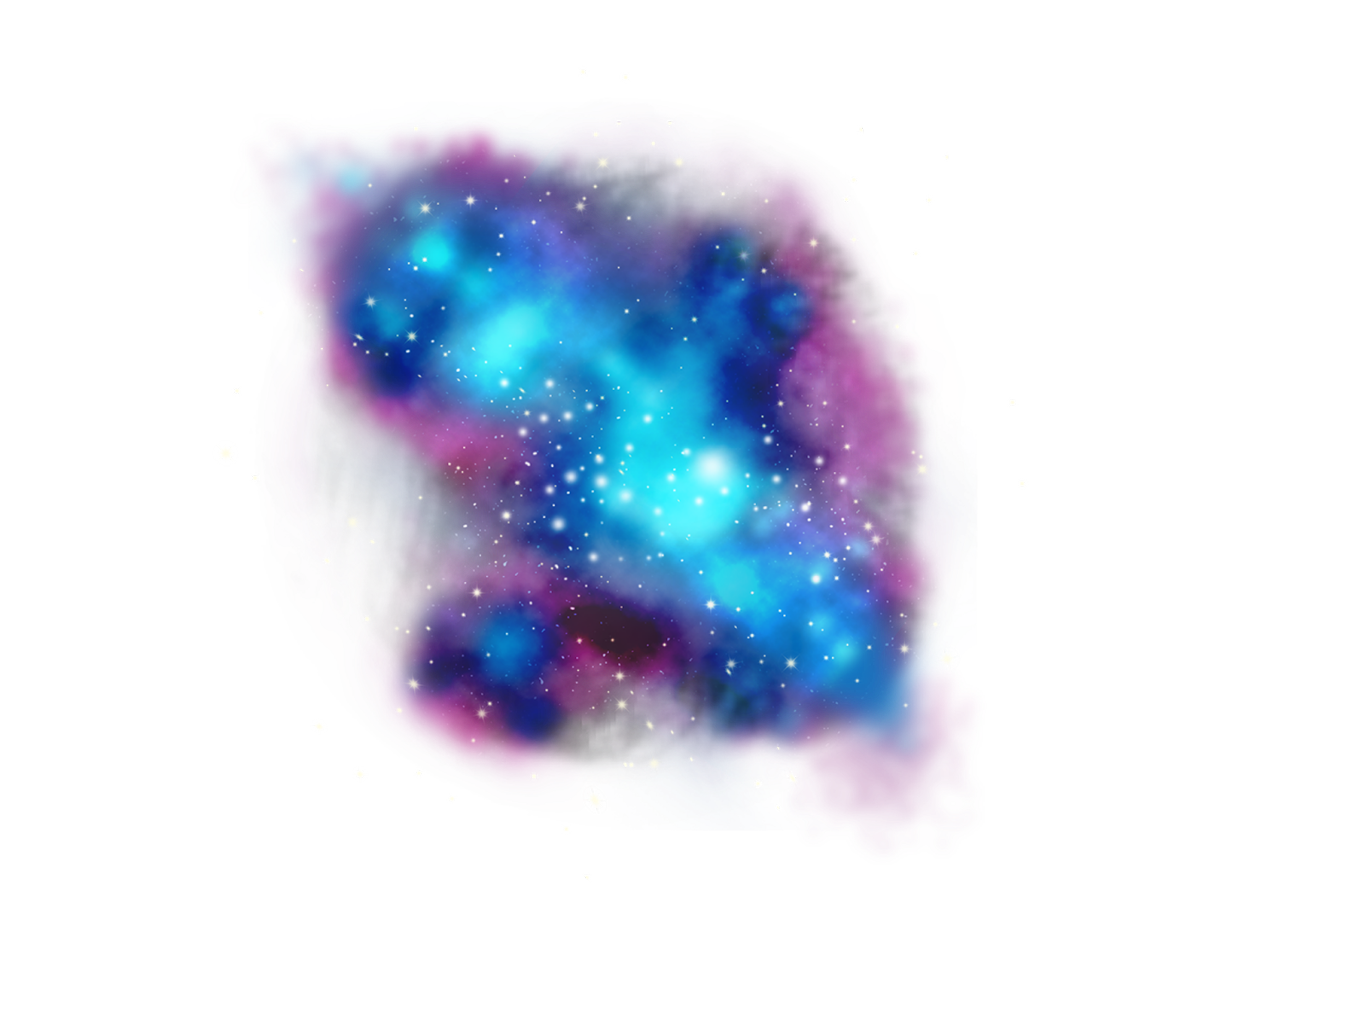 Galaxy clipart astronomy. Freetoedit png stars with